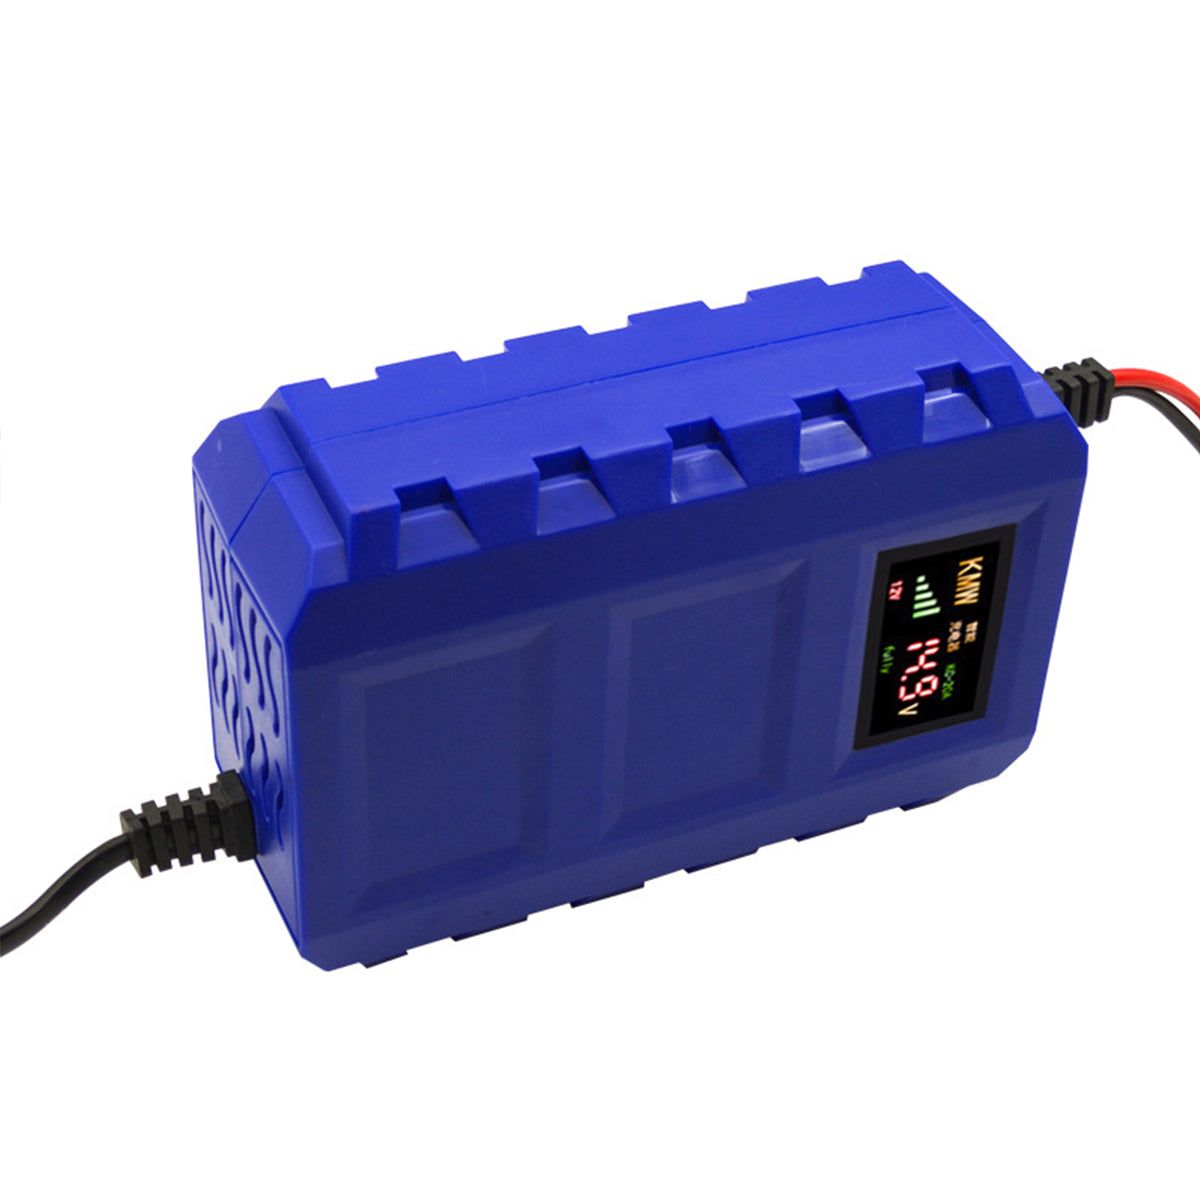 12V 10A Portable Smart Battery Charger